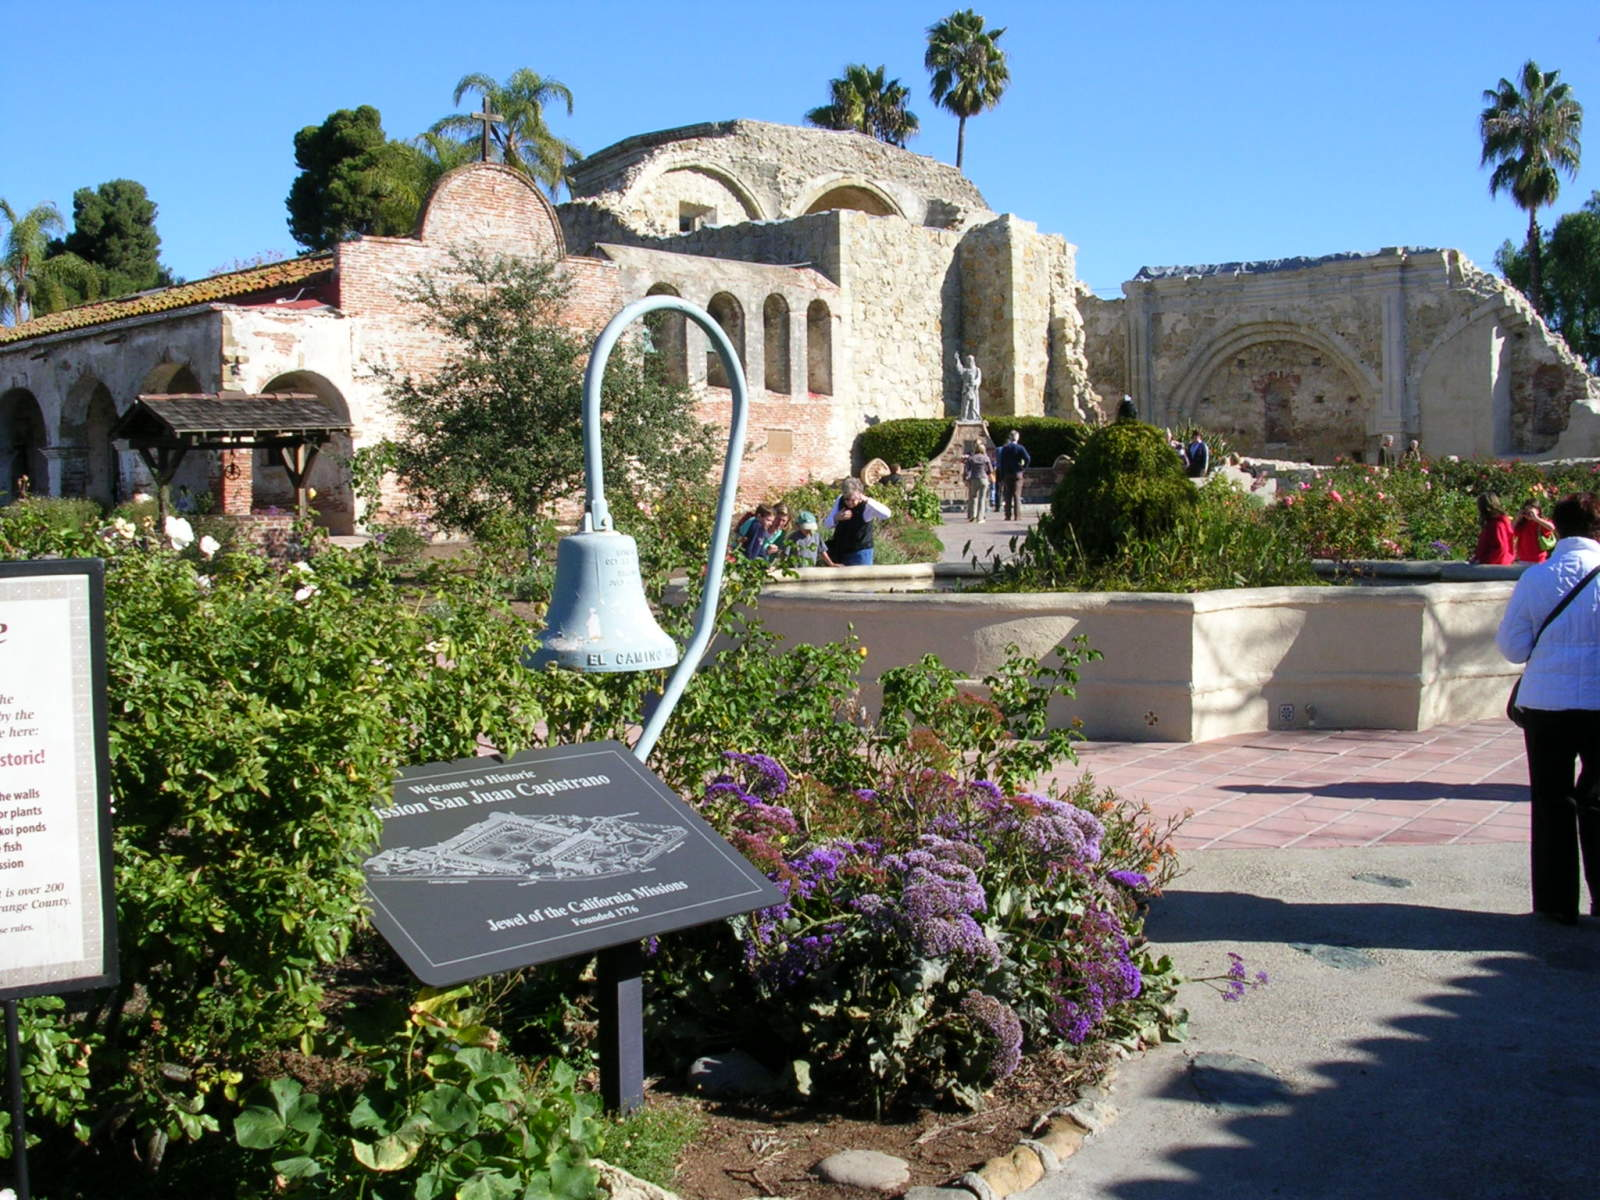 Mission and Gardens